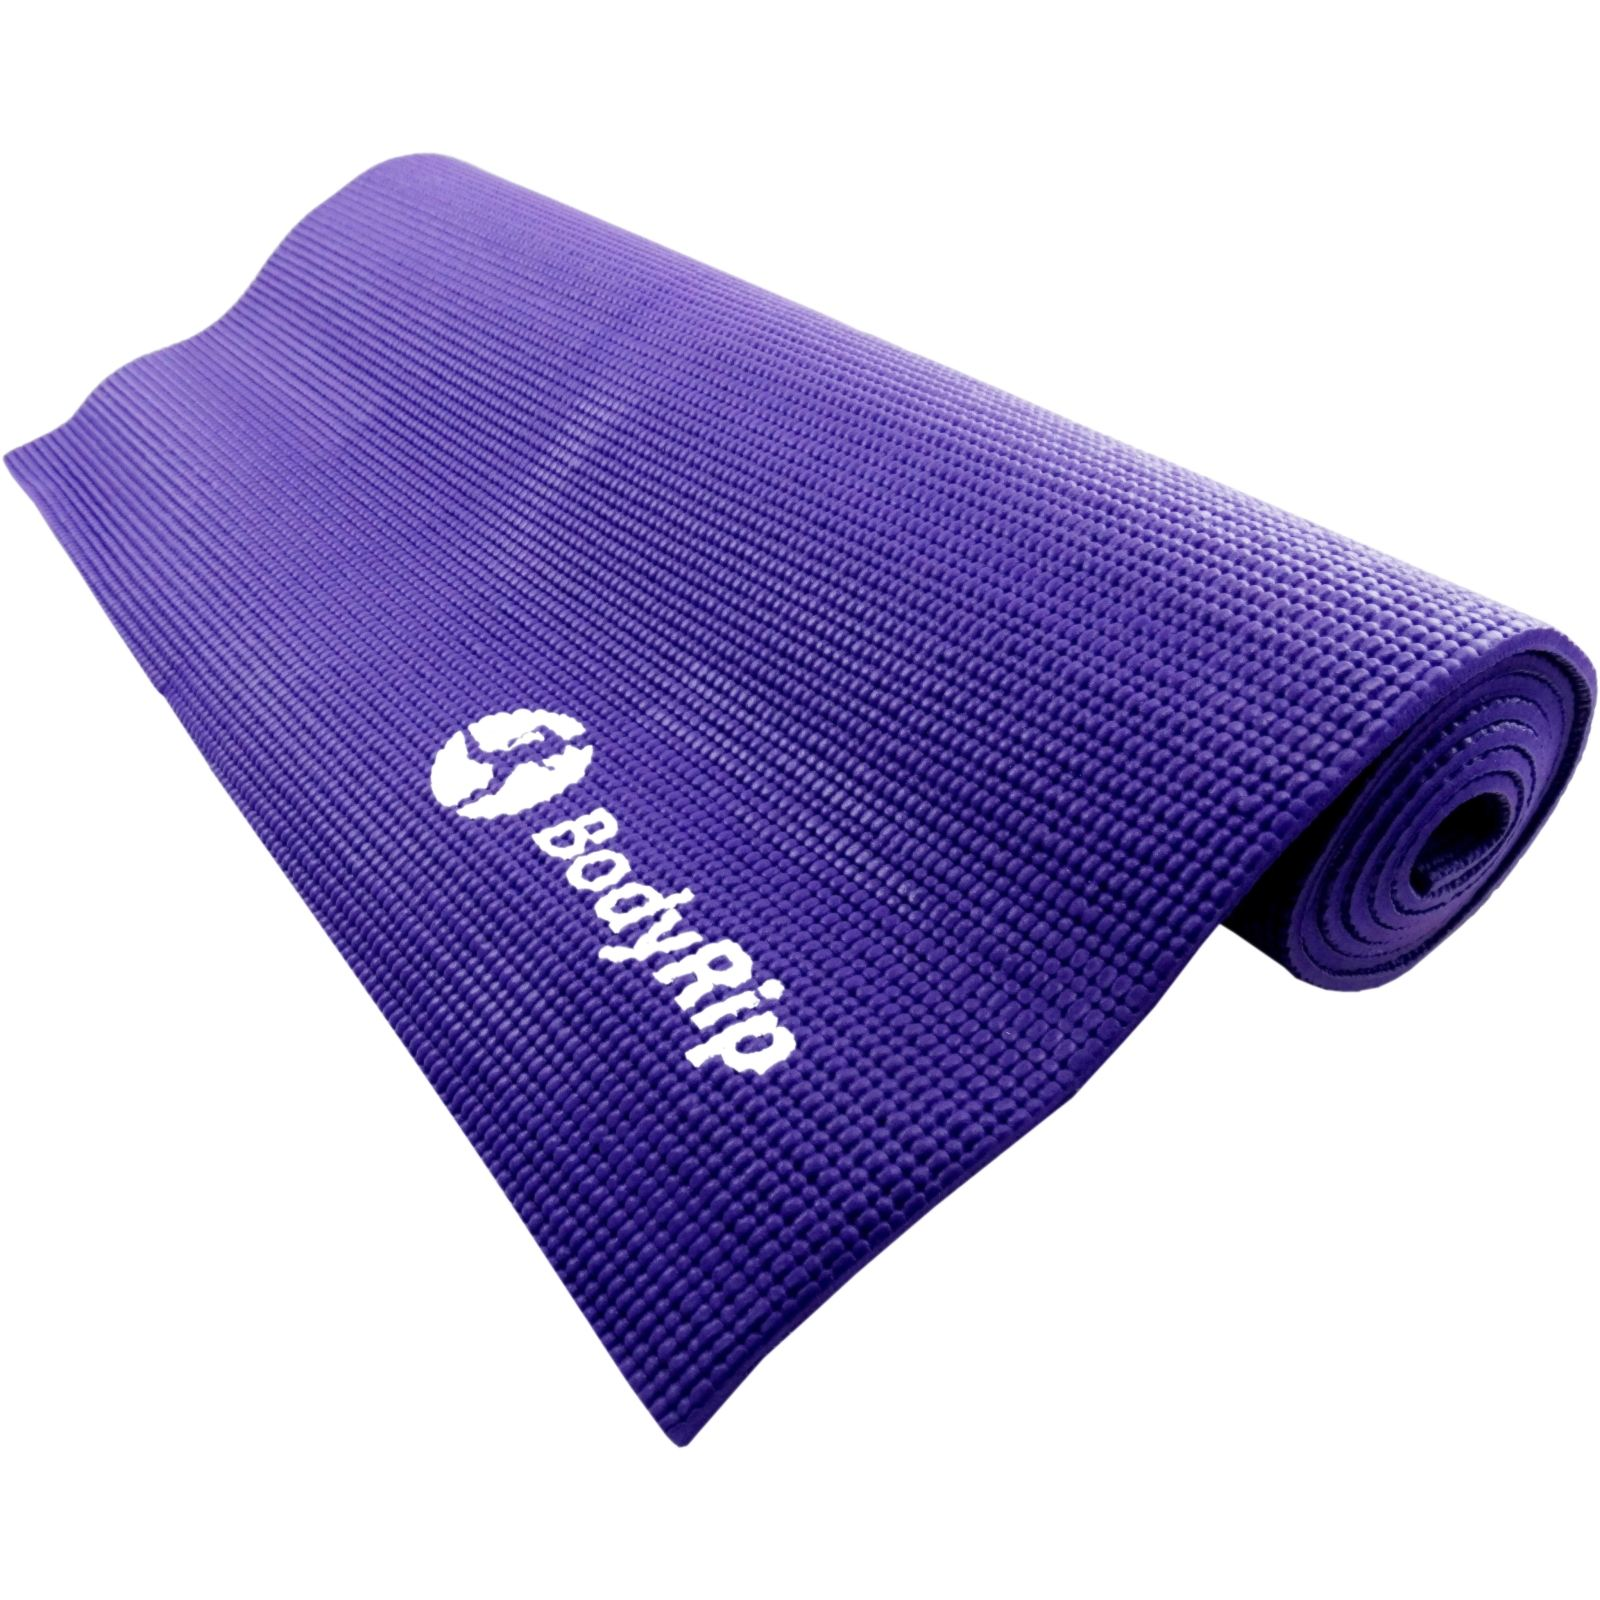 mats fitness yoga workout mat gym gymnastics accessories exercise pilates diy gymnastic itm